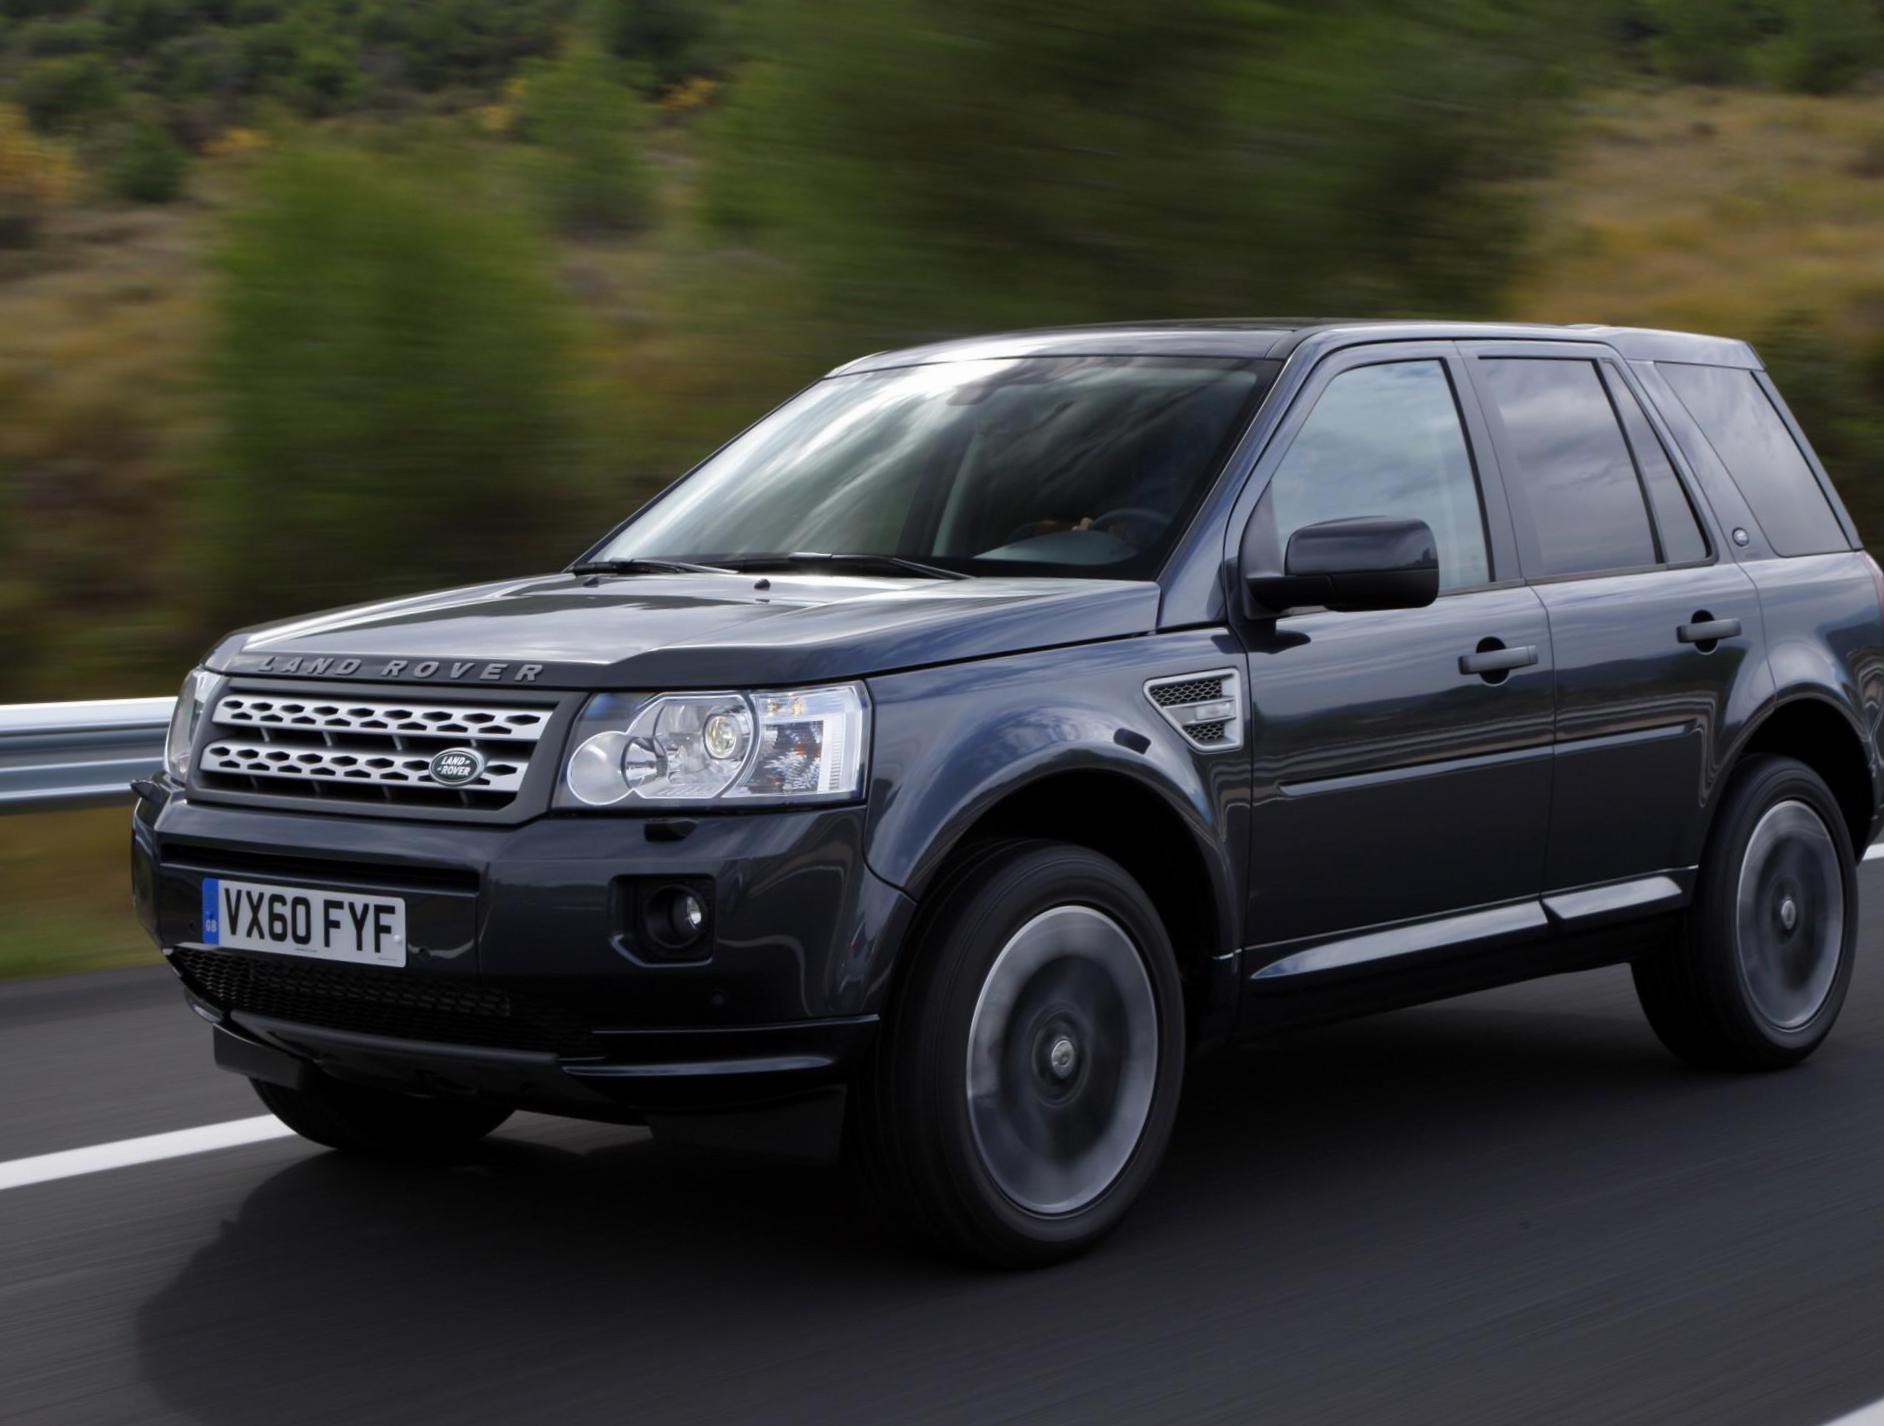 Land Rover Freelander 2 review 2014